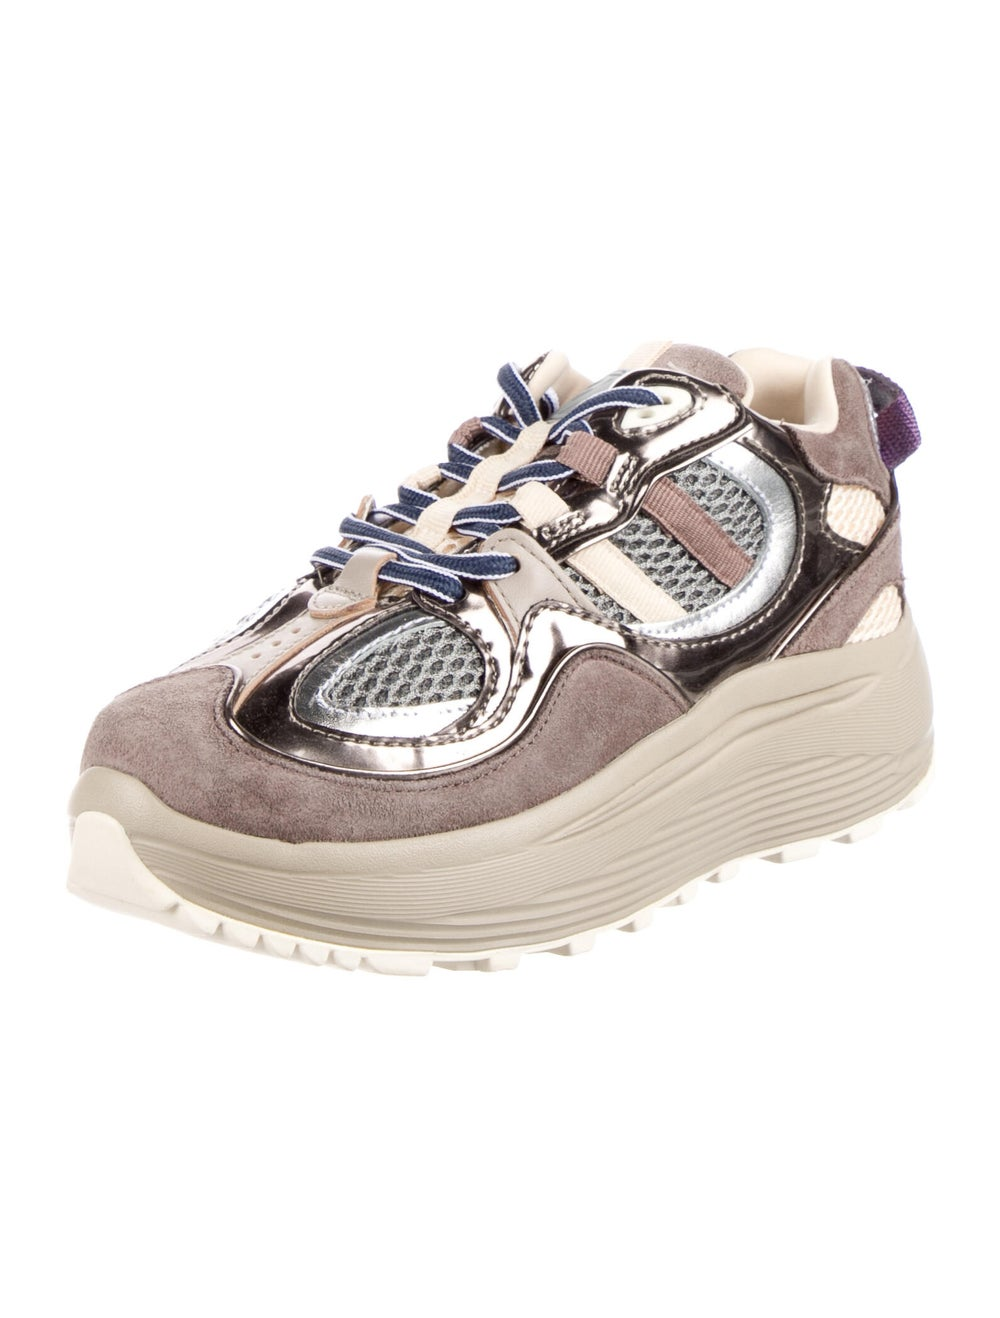 Eytys Jet Chunky Sneakers - image 2